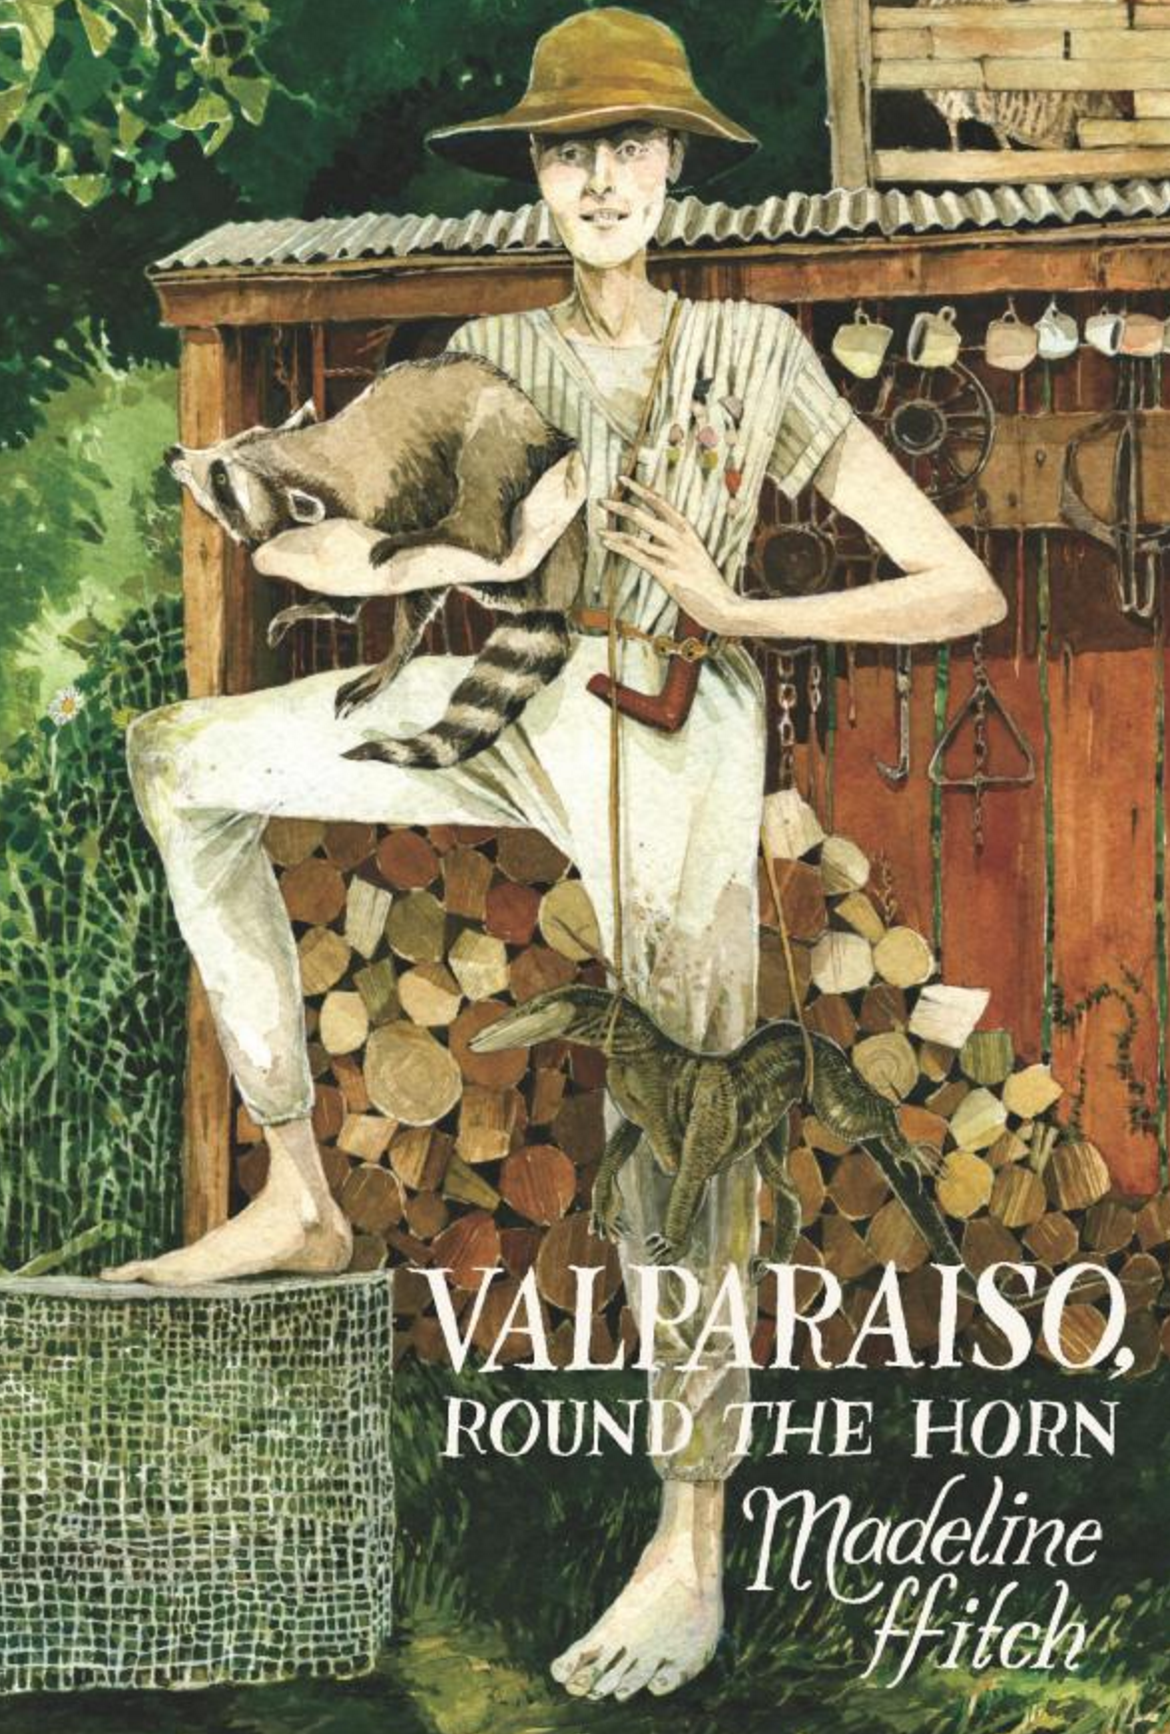 Review: Valparaiso, Round the Horn